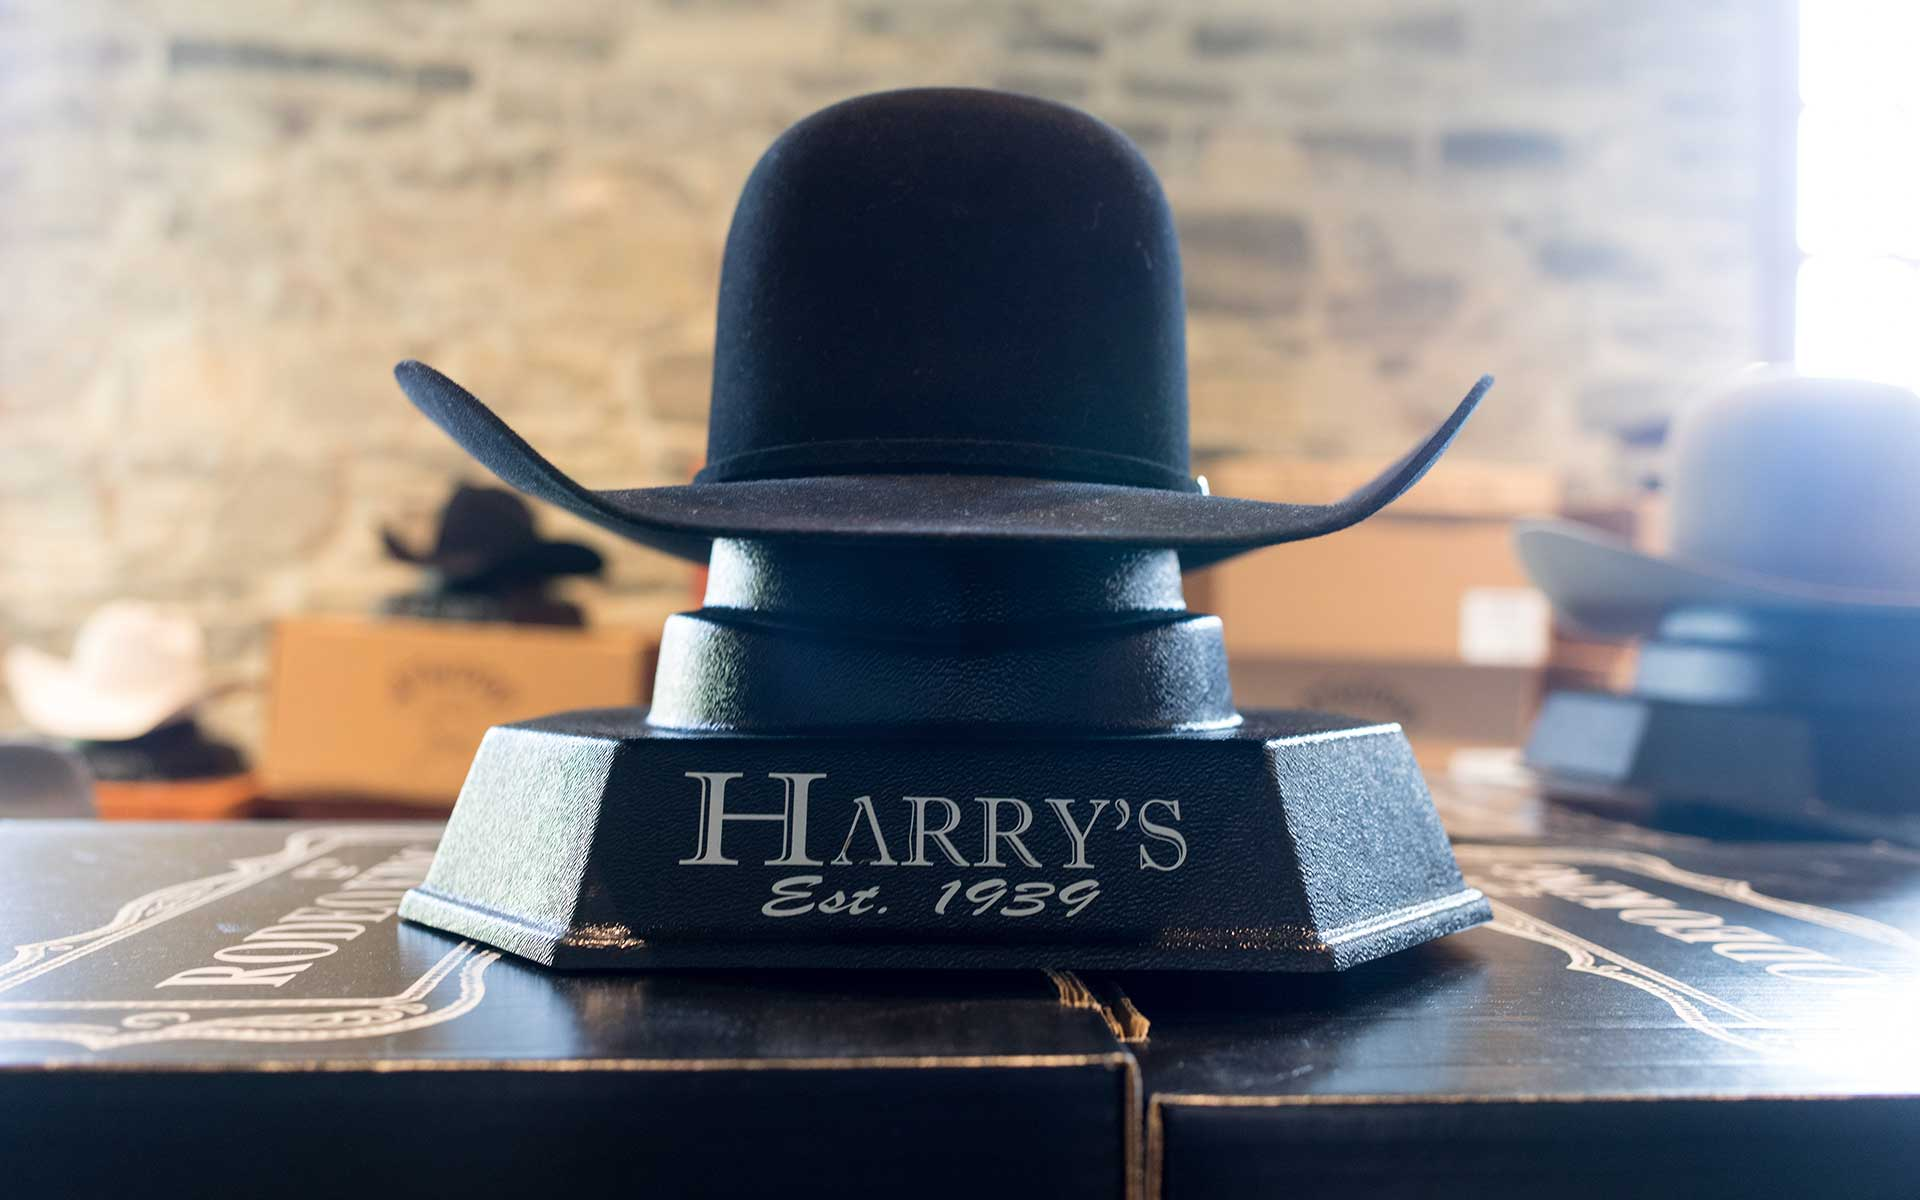 Felt hat in Harry's Boots store